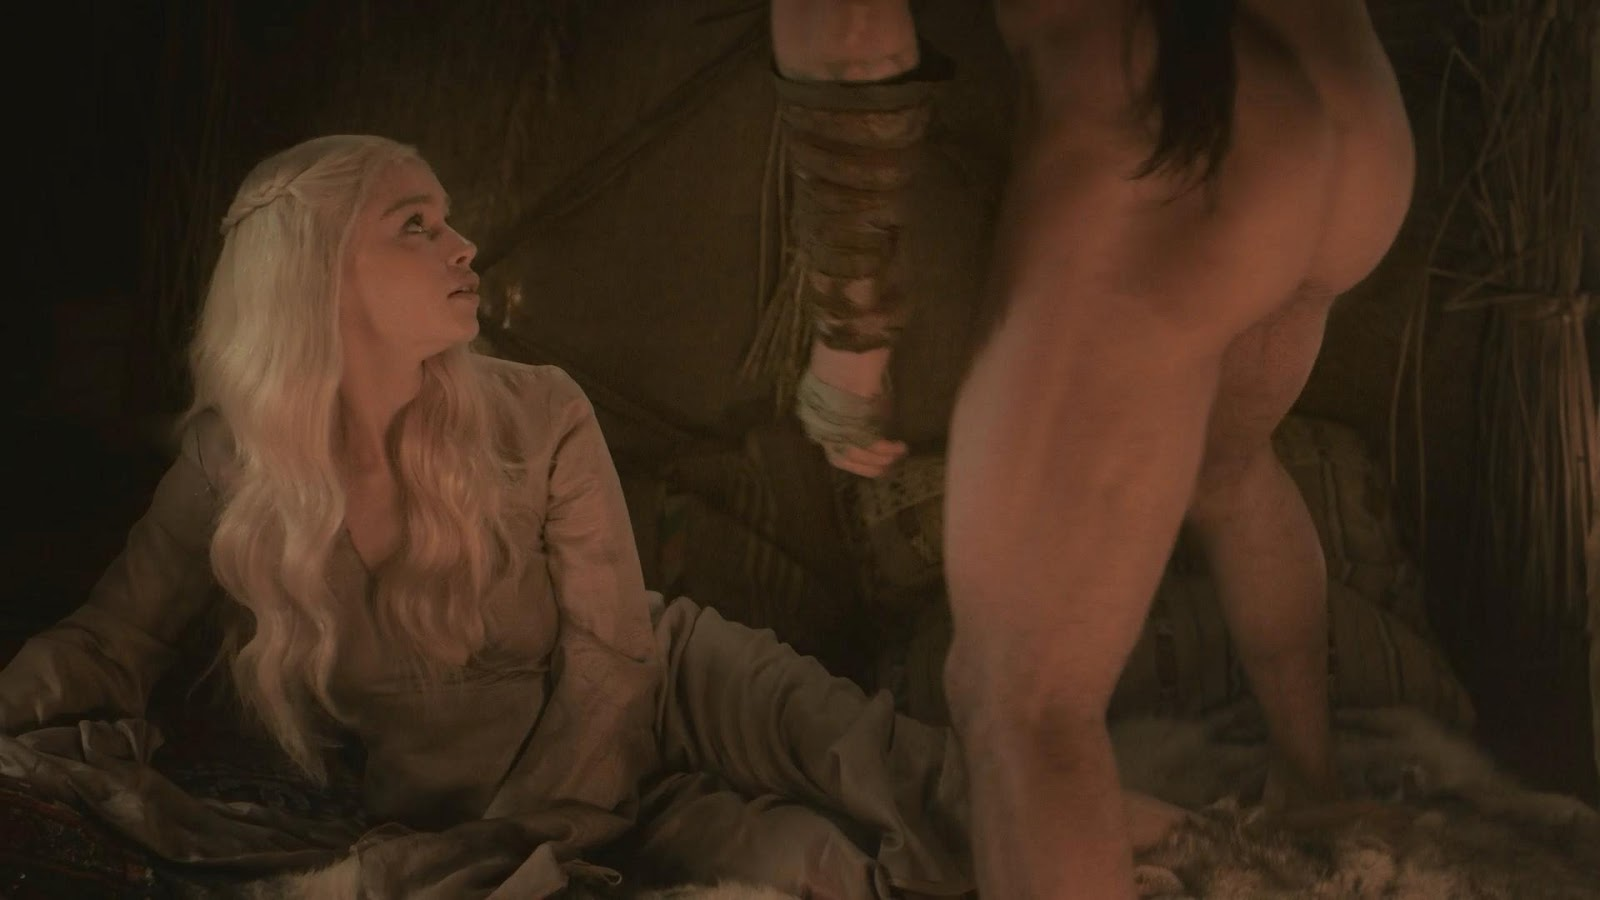 Jason momoa game of thrones nude taste what